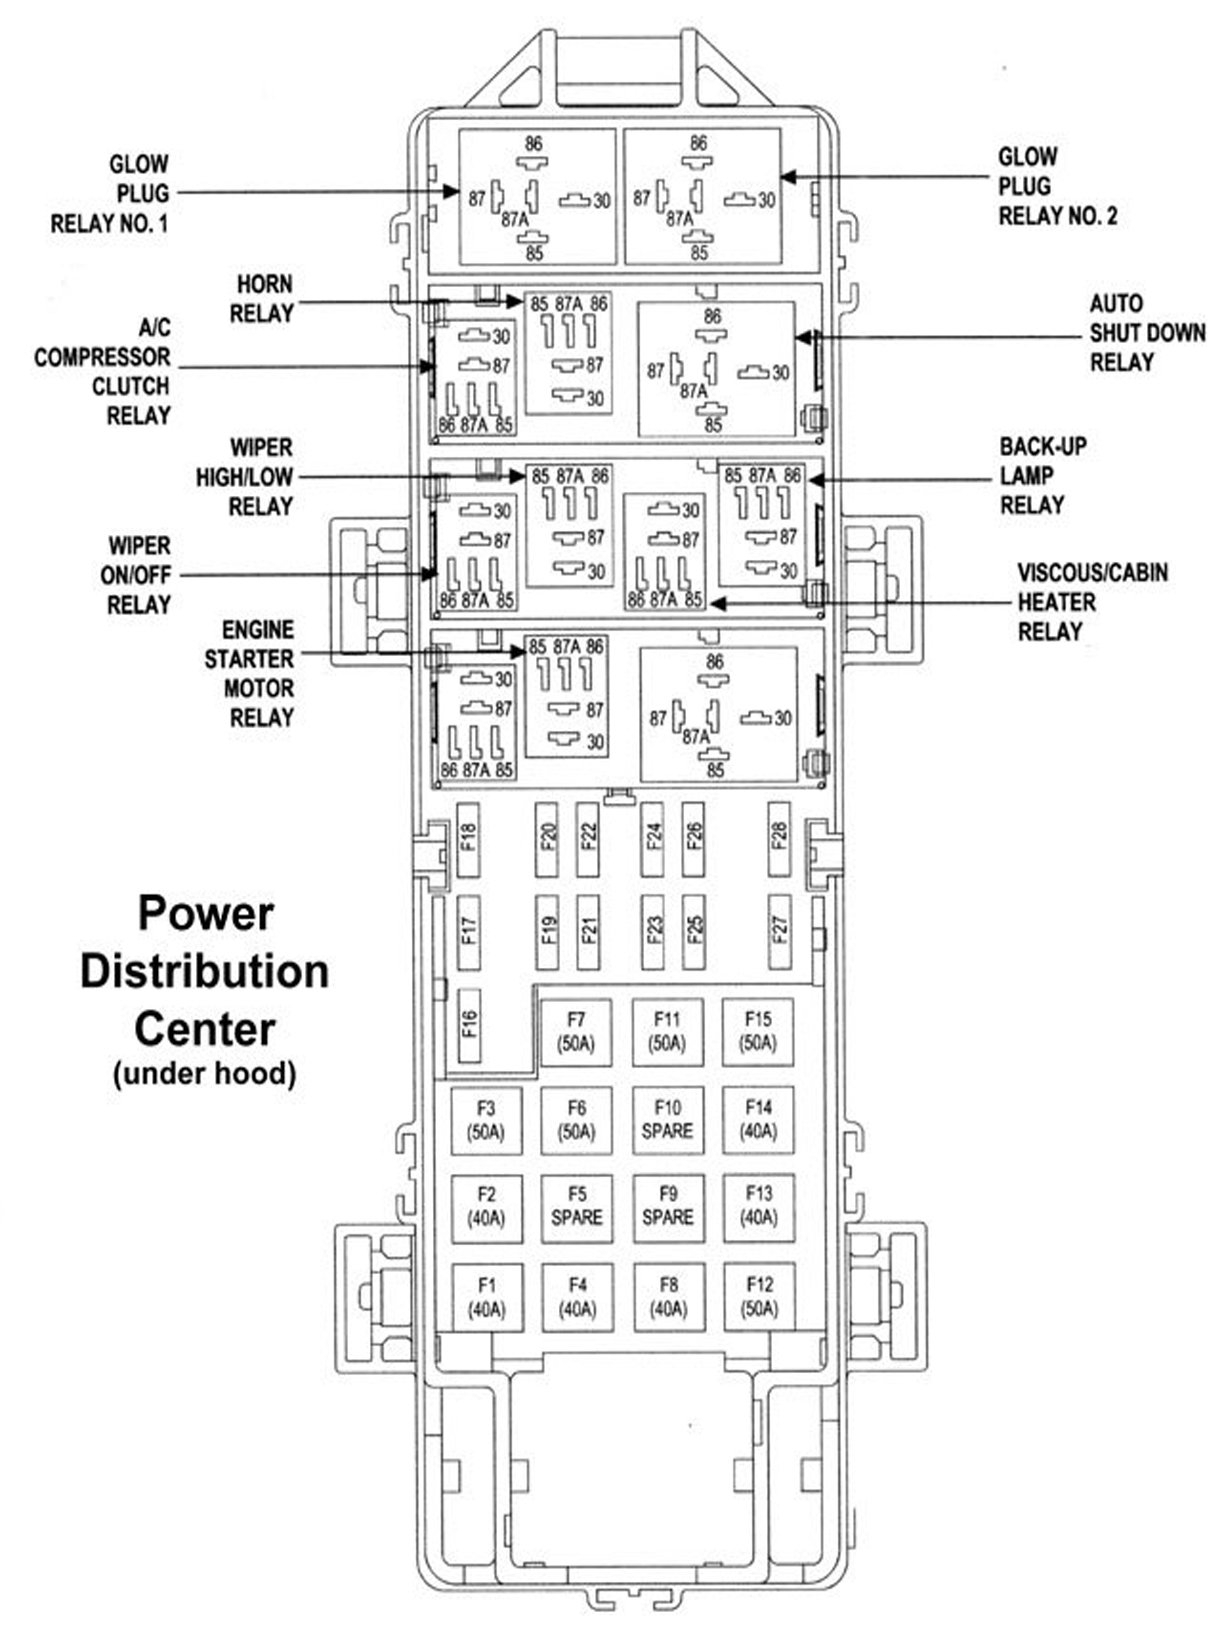 DIAGRAM] 96 Grand Cherokee Fuse Box Diagram FULL Version HD Quality Box  Diagram - 20867261WIRING.CONCESSIONARIABELOGISENIGALLIA.ITconcessionariabelogisenigallia.it